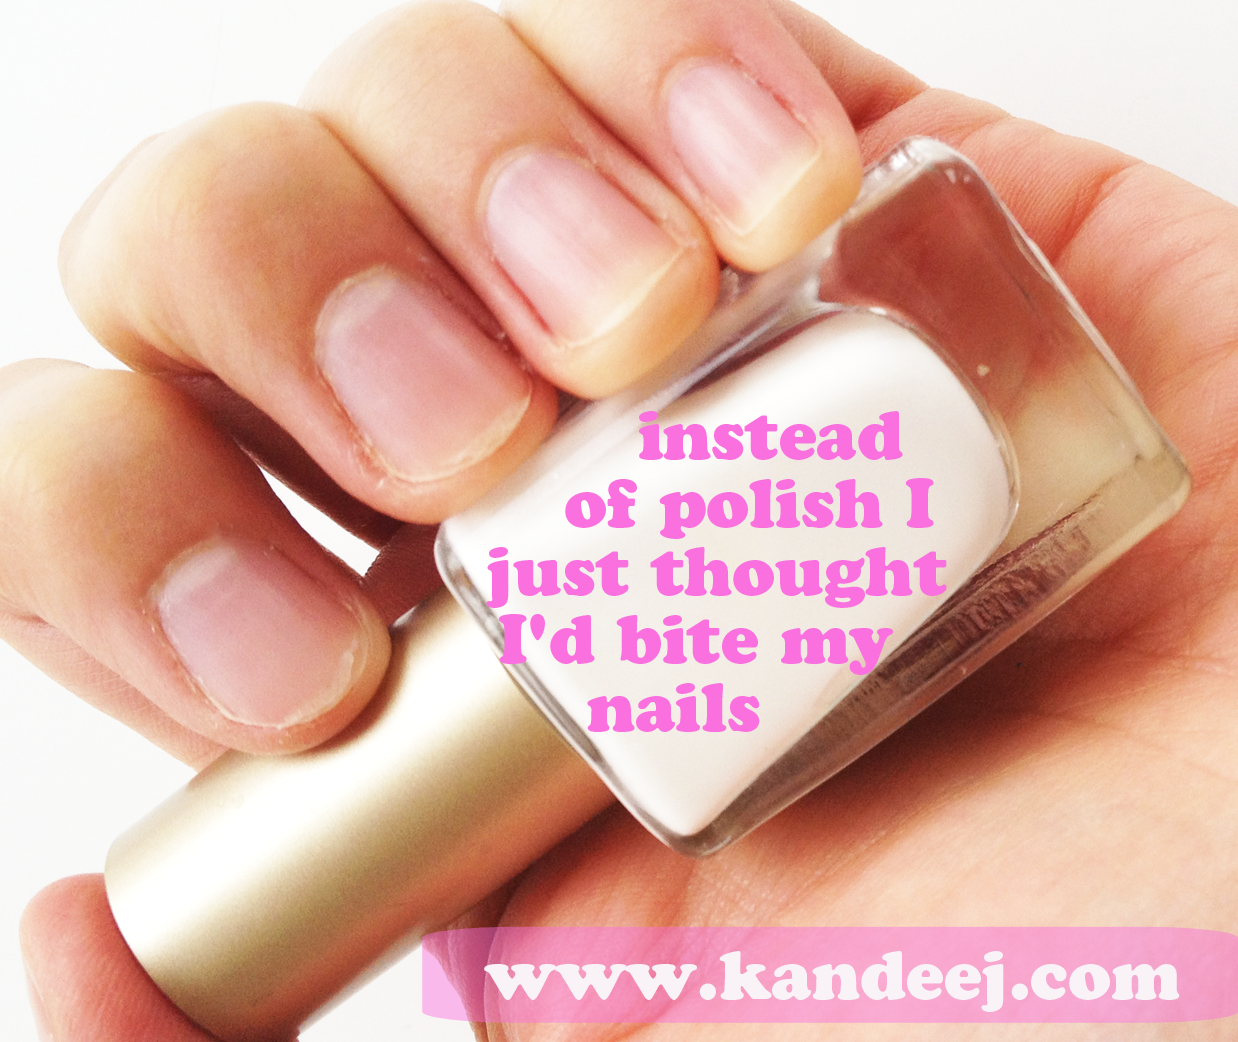 New Trend In Nail Polish Awe Fun Or Awesome